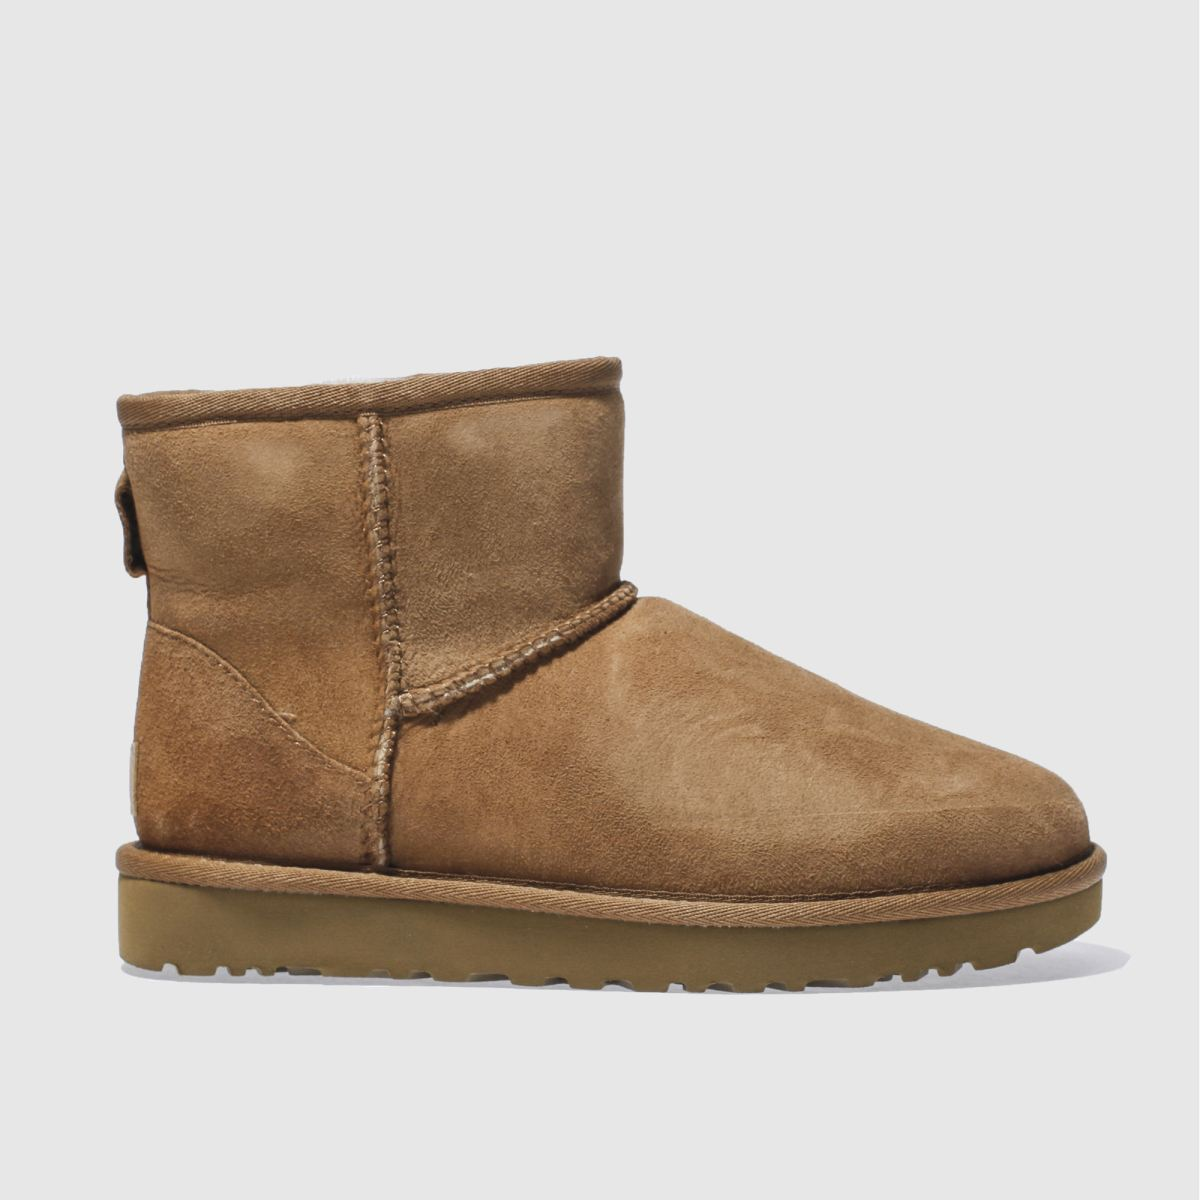 Welcome to the official UGG Australia online store! Explore the new and classic UGG boots collections available for women, men and kids. Shop all styles here!